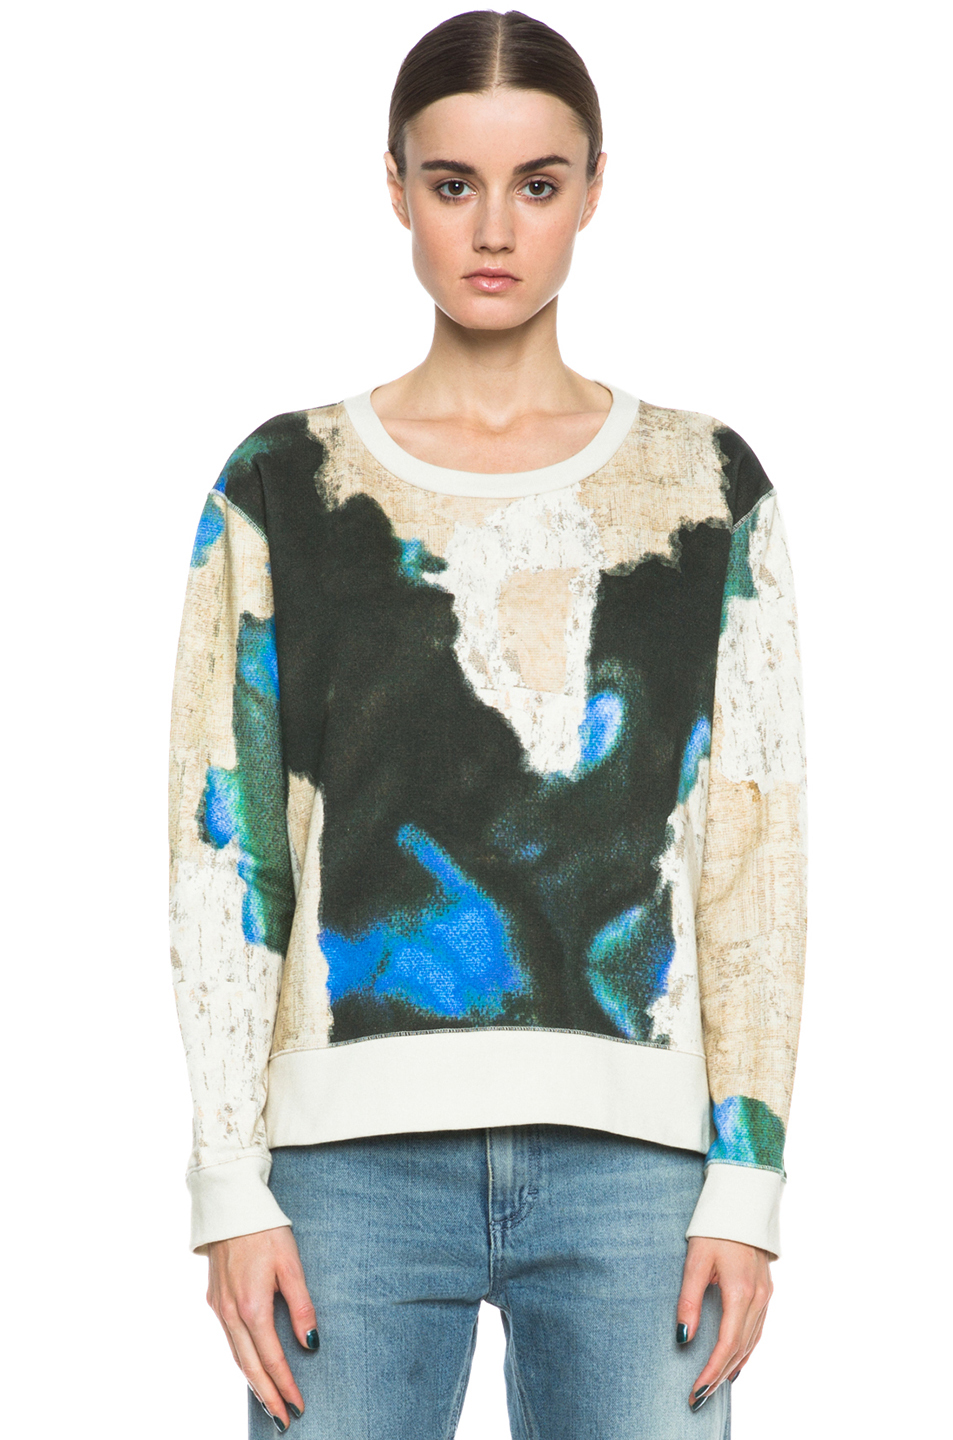 Acne Studios|Cotton Angle Printed Sweatshirt in Petrol Blue